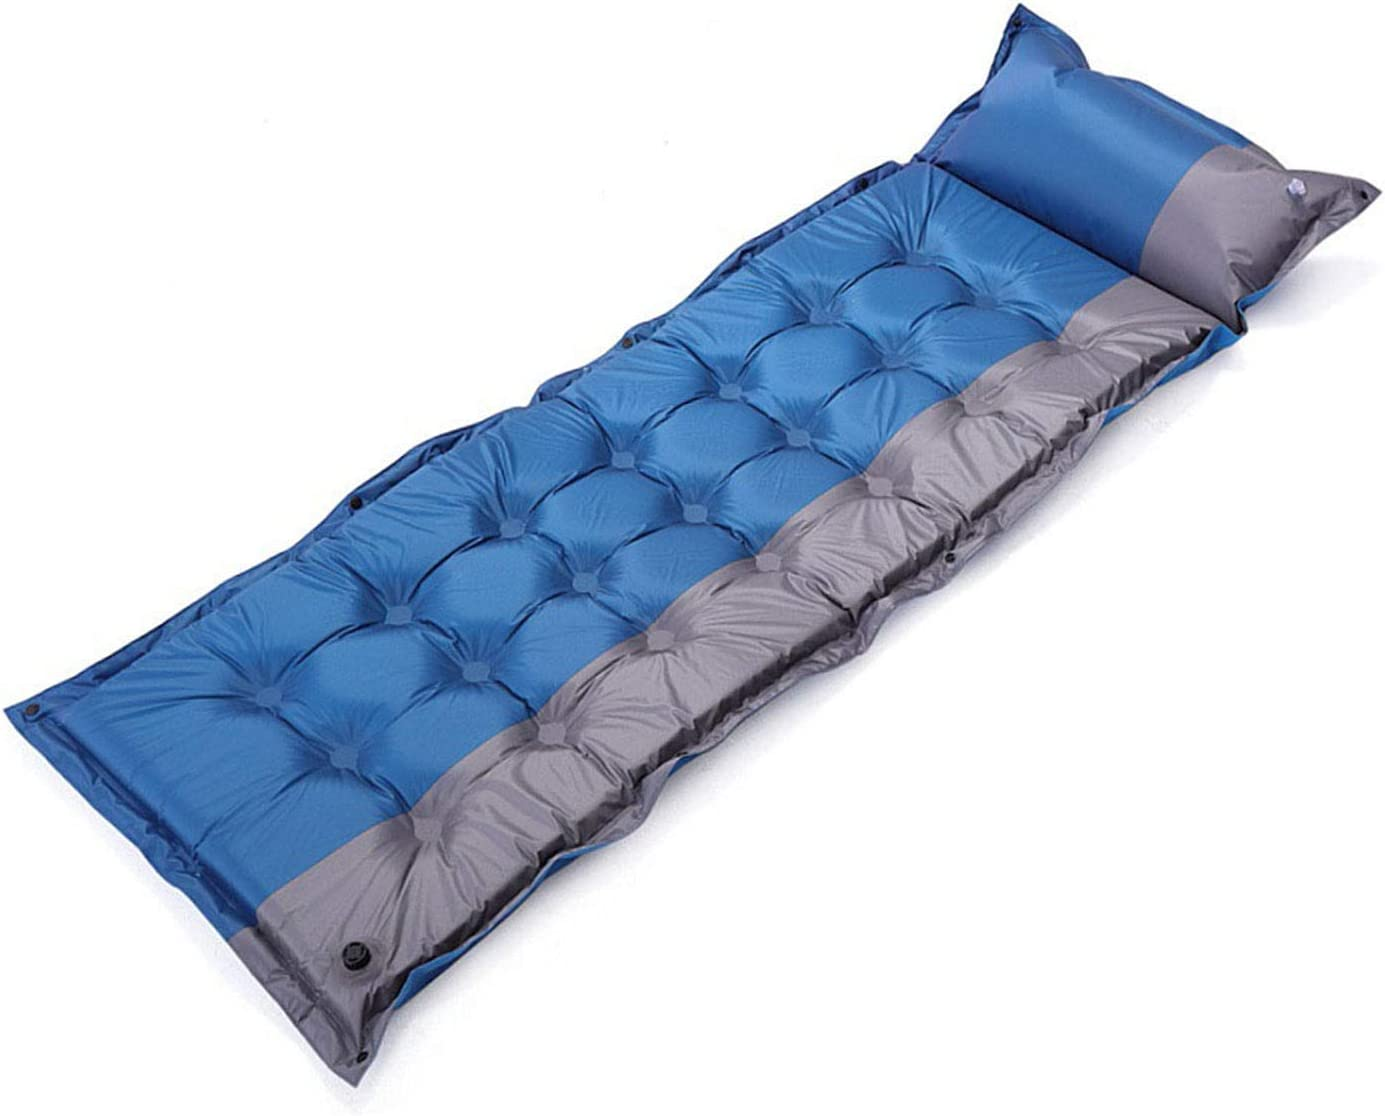 Camping Sleeping Pad Inflatable Camping Mat with Pillow for Backpacking,Traveling,Hiking,Durable Air Mattress Compact (Blue,185×60×2.5cm)